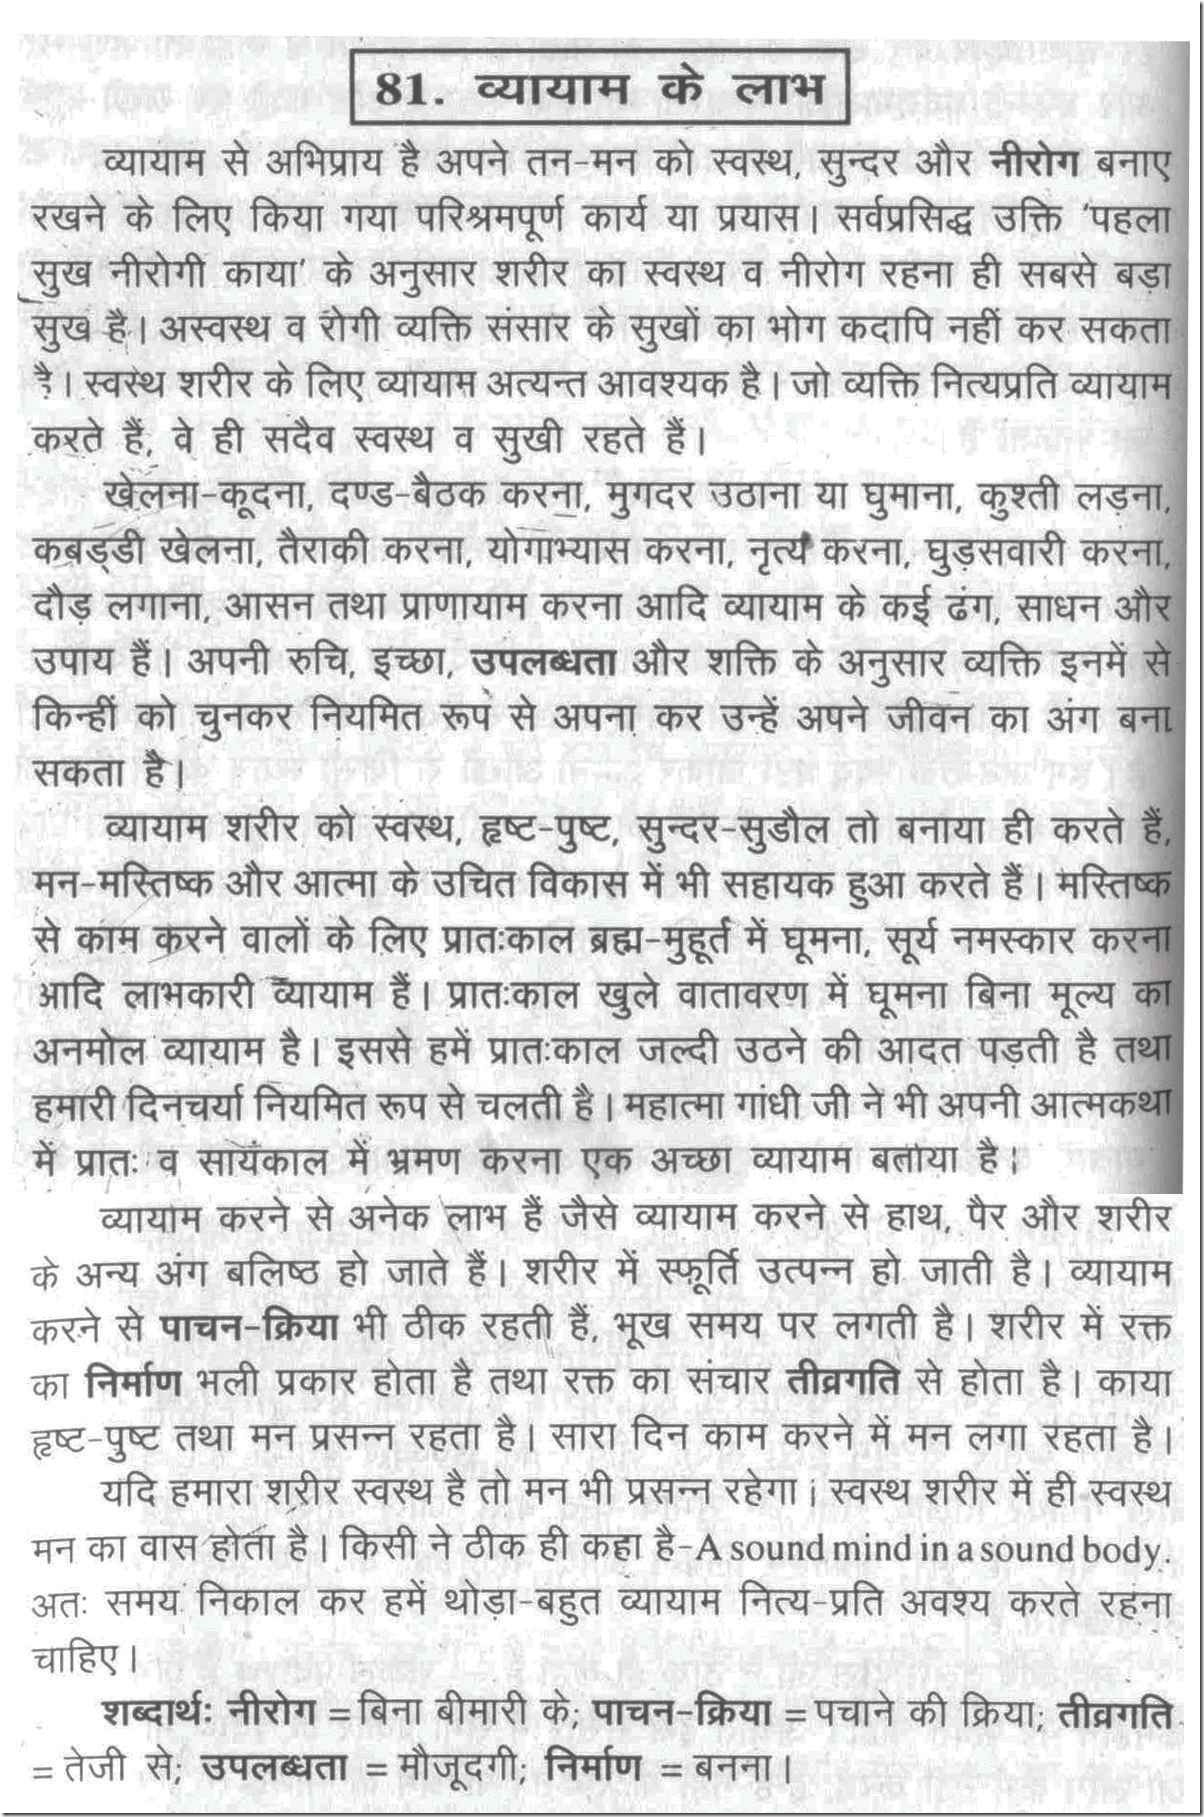 011 2563478896 Essay On Health And Fitness Through Food Good Habits In Hindi Exceptional Wikipedia Full